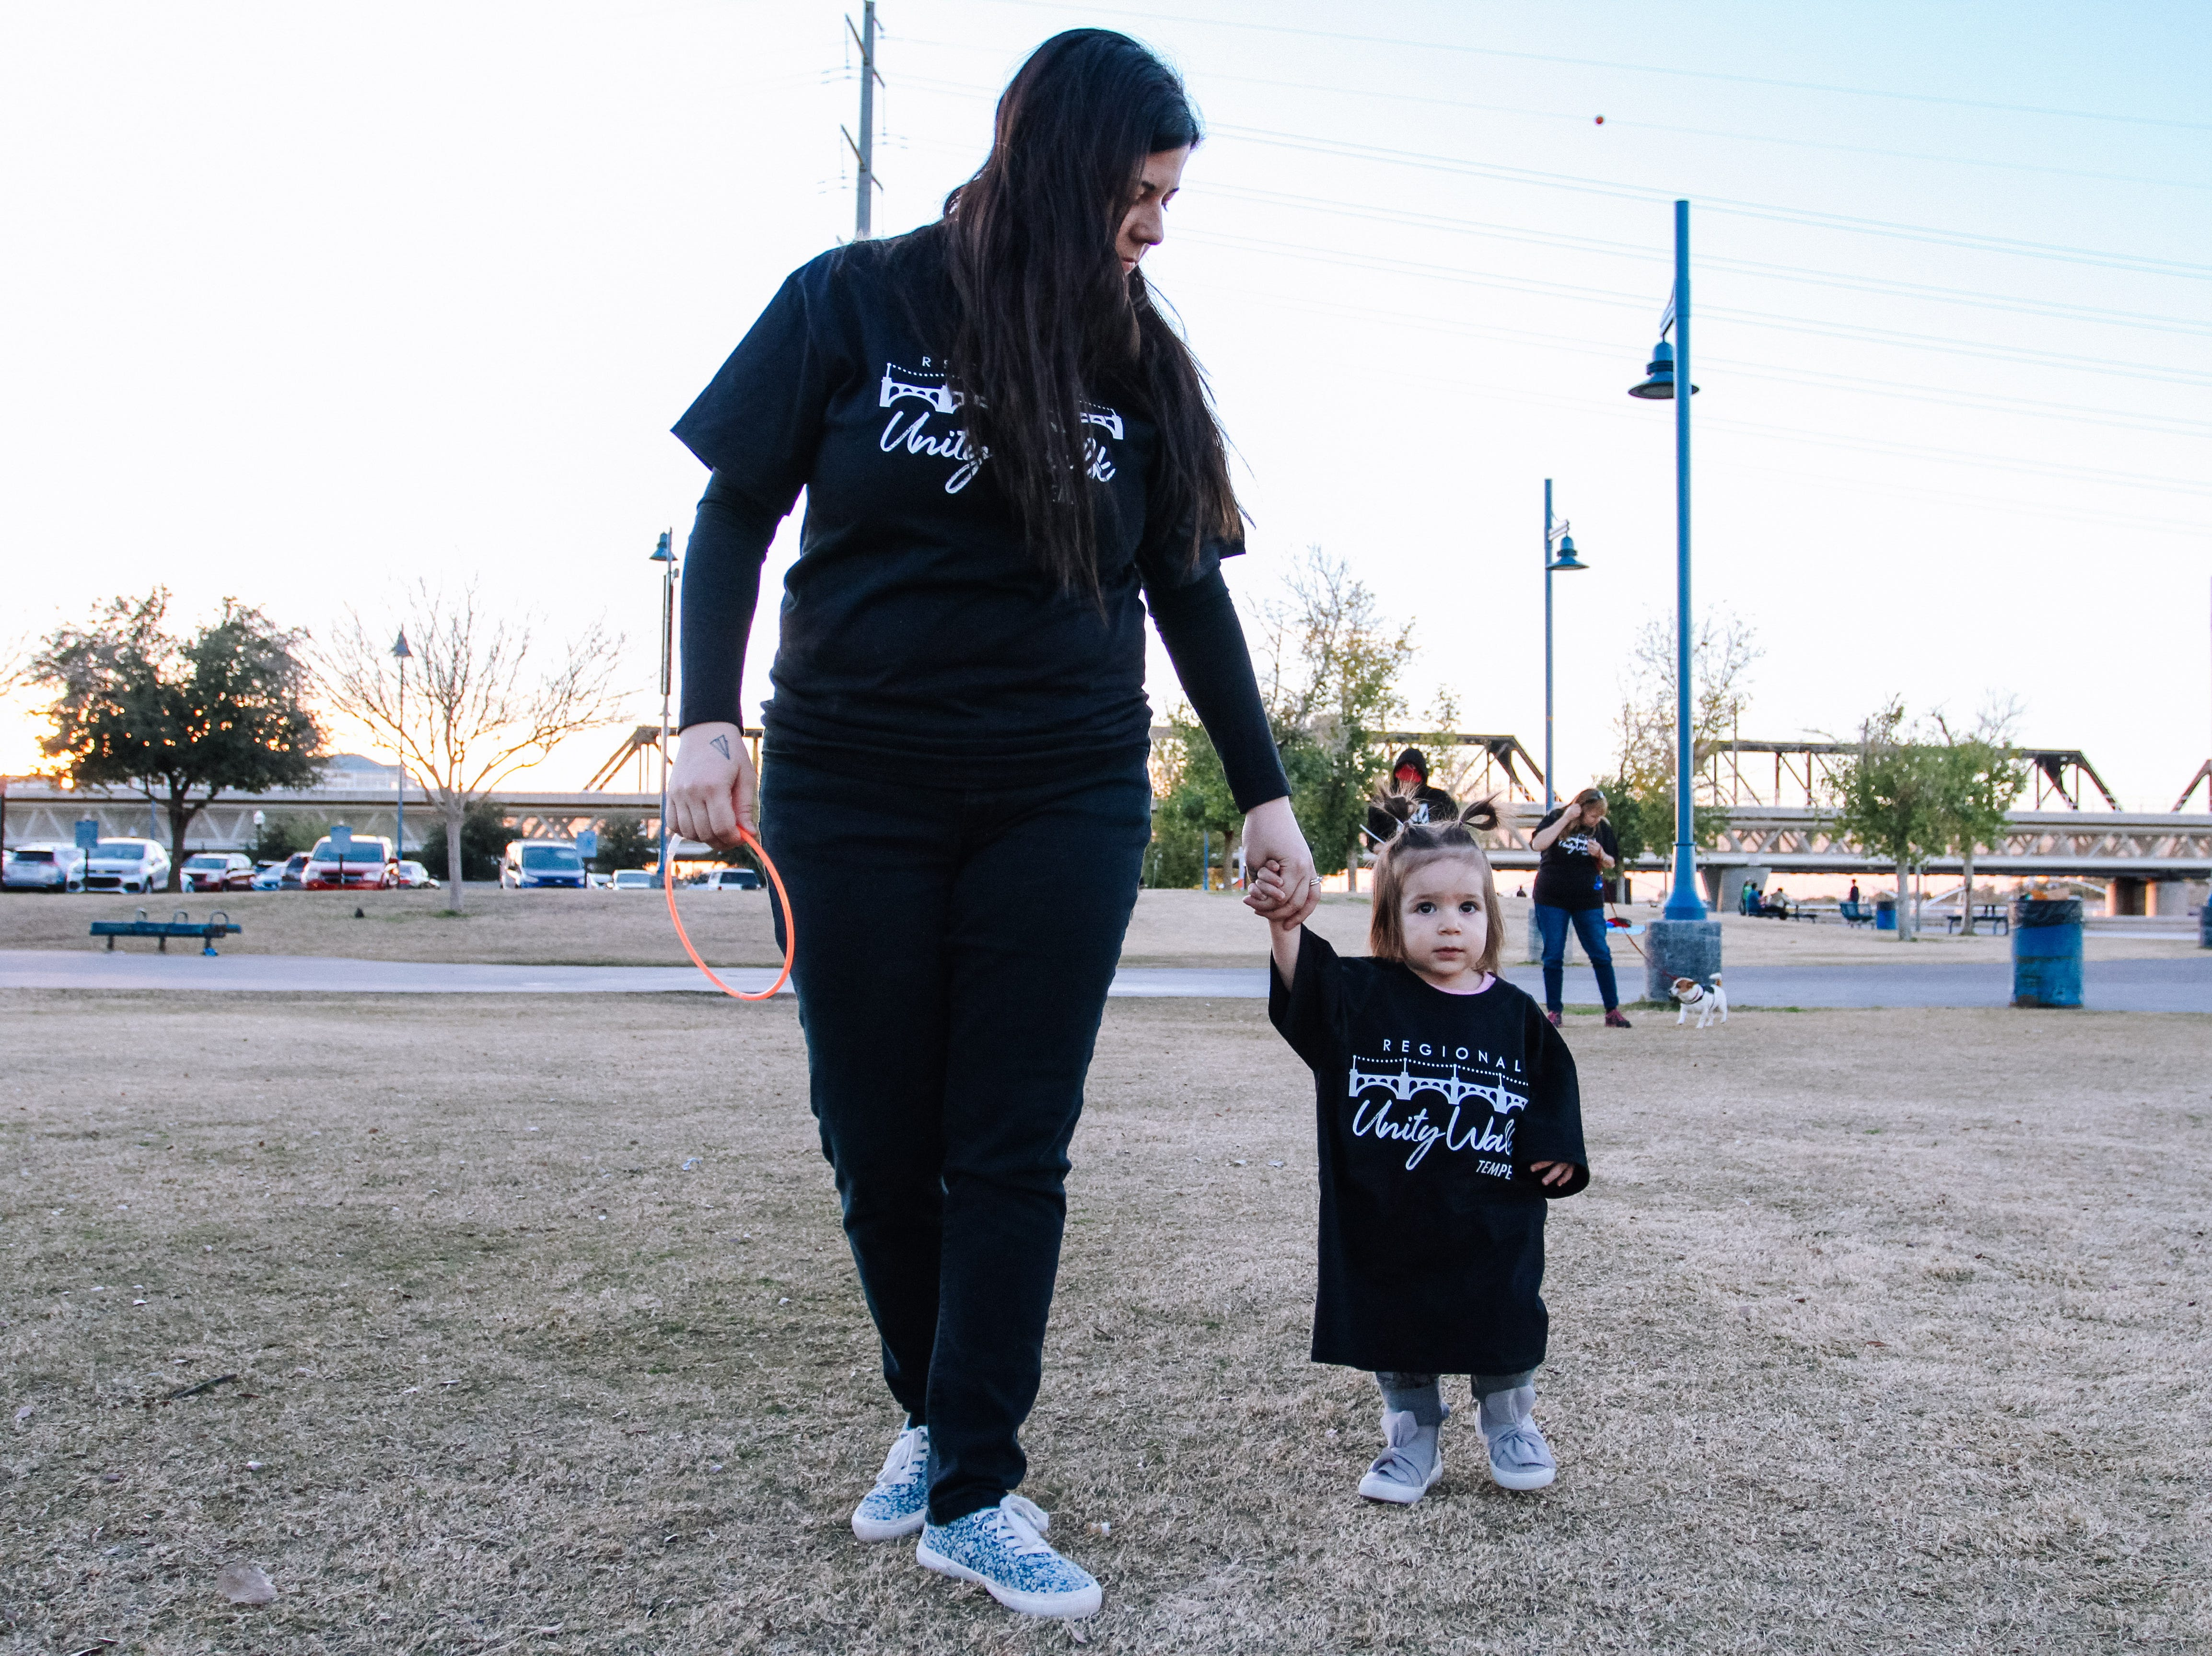 Samantha Jones, a teacher at Tempe High School, walks with her daughter at the Unity Walk 2019 at Tempe Beach Park, in Tempe, Arizona on Saturday, Jan. 26, 2019.